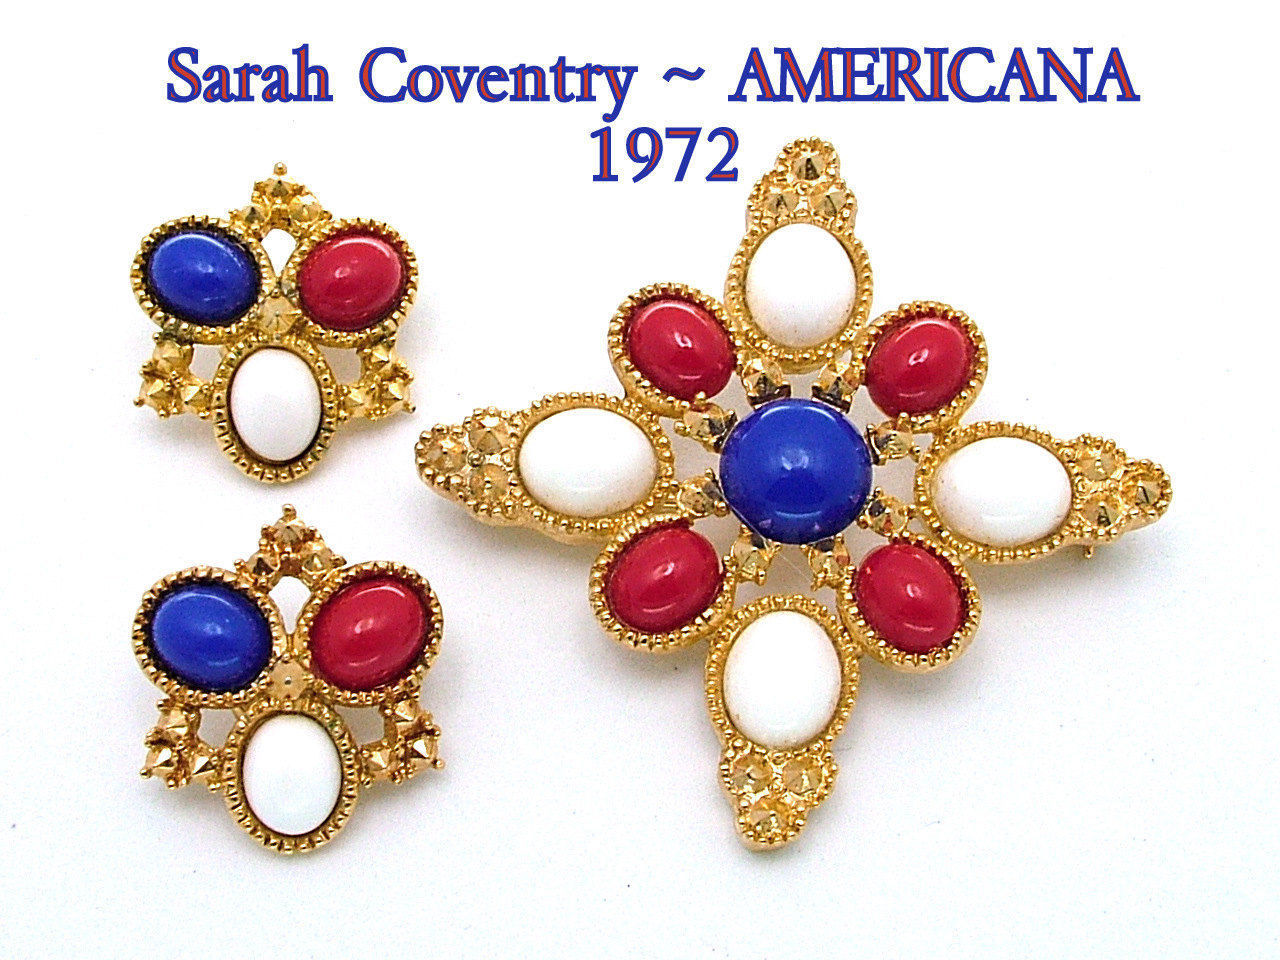 Sarah Coventry Brooch and Earrings Set AMERICANA From 1972